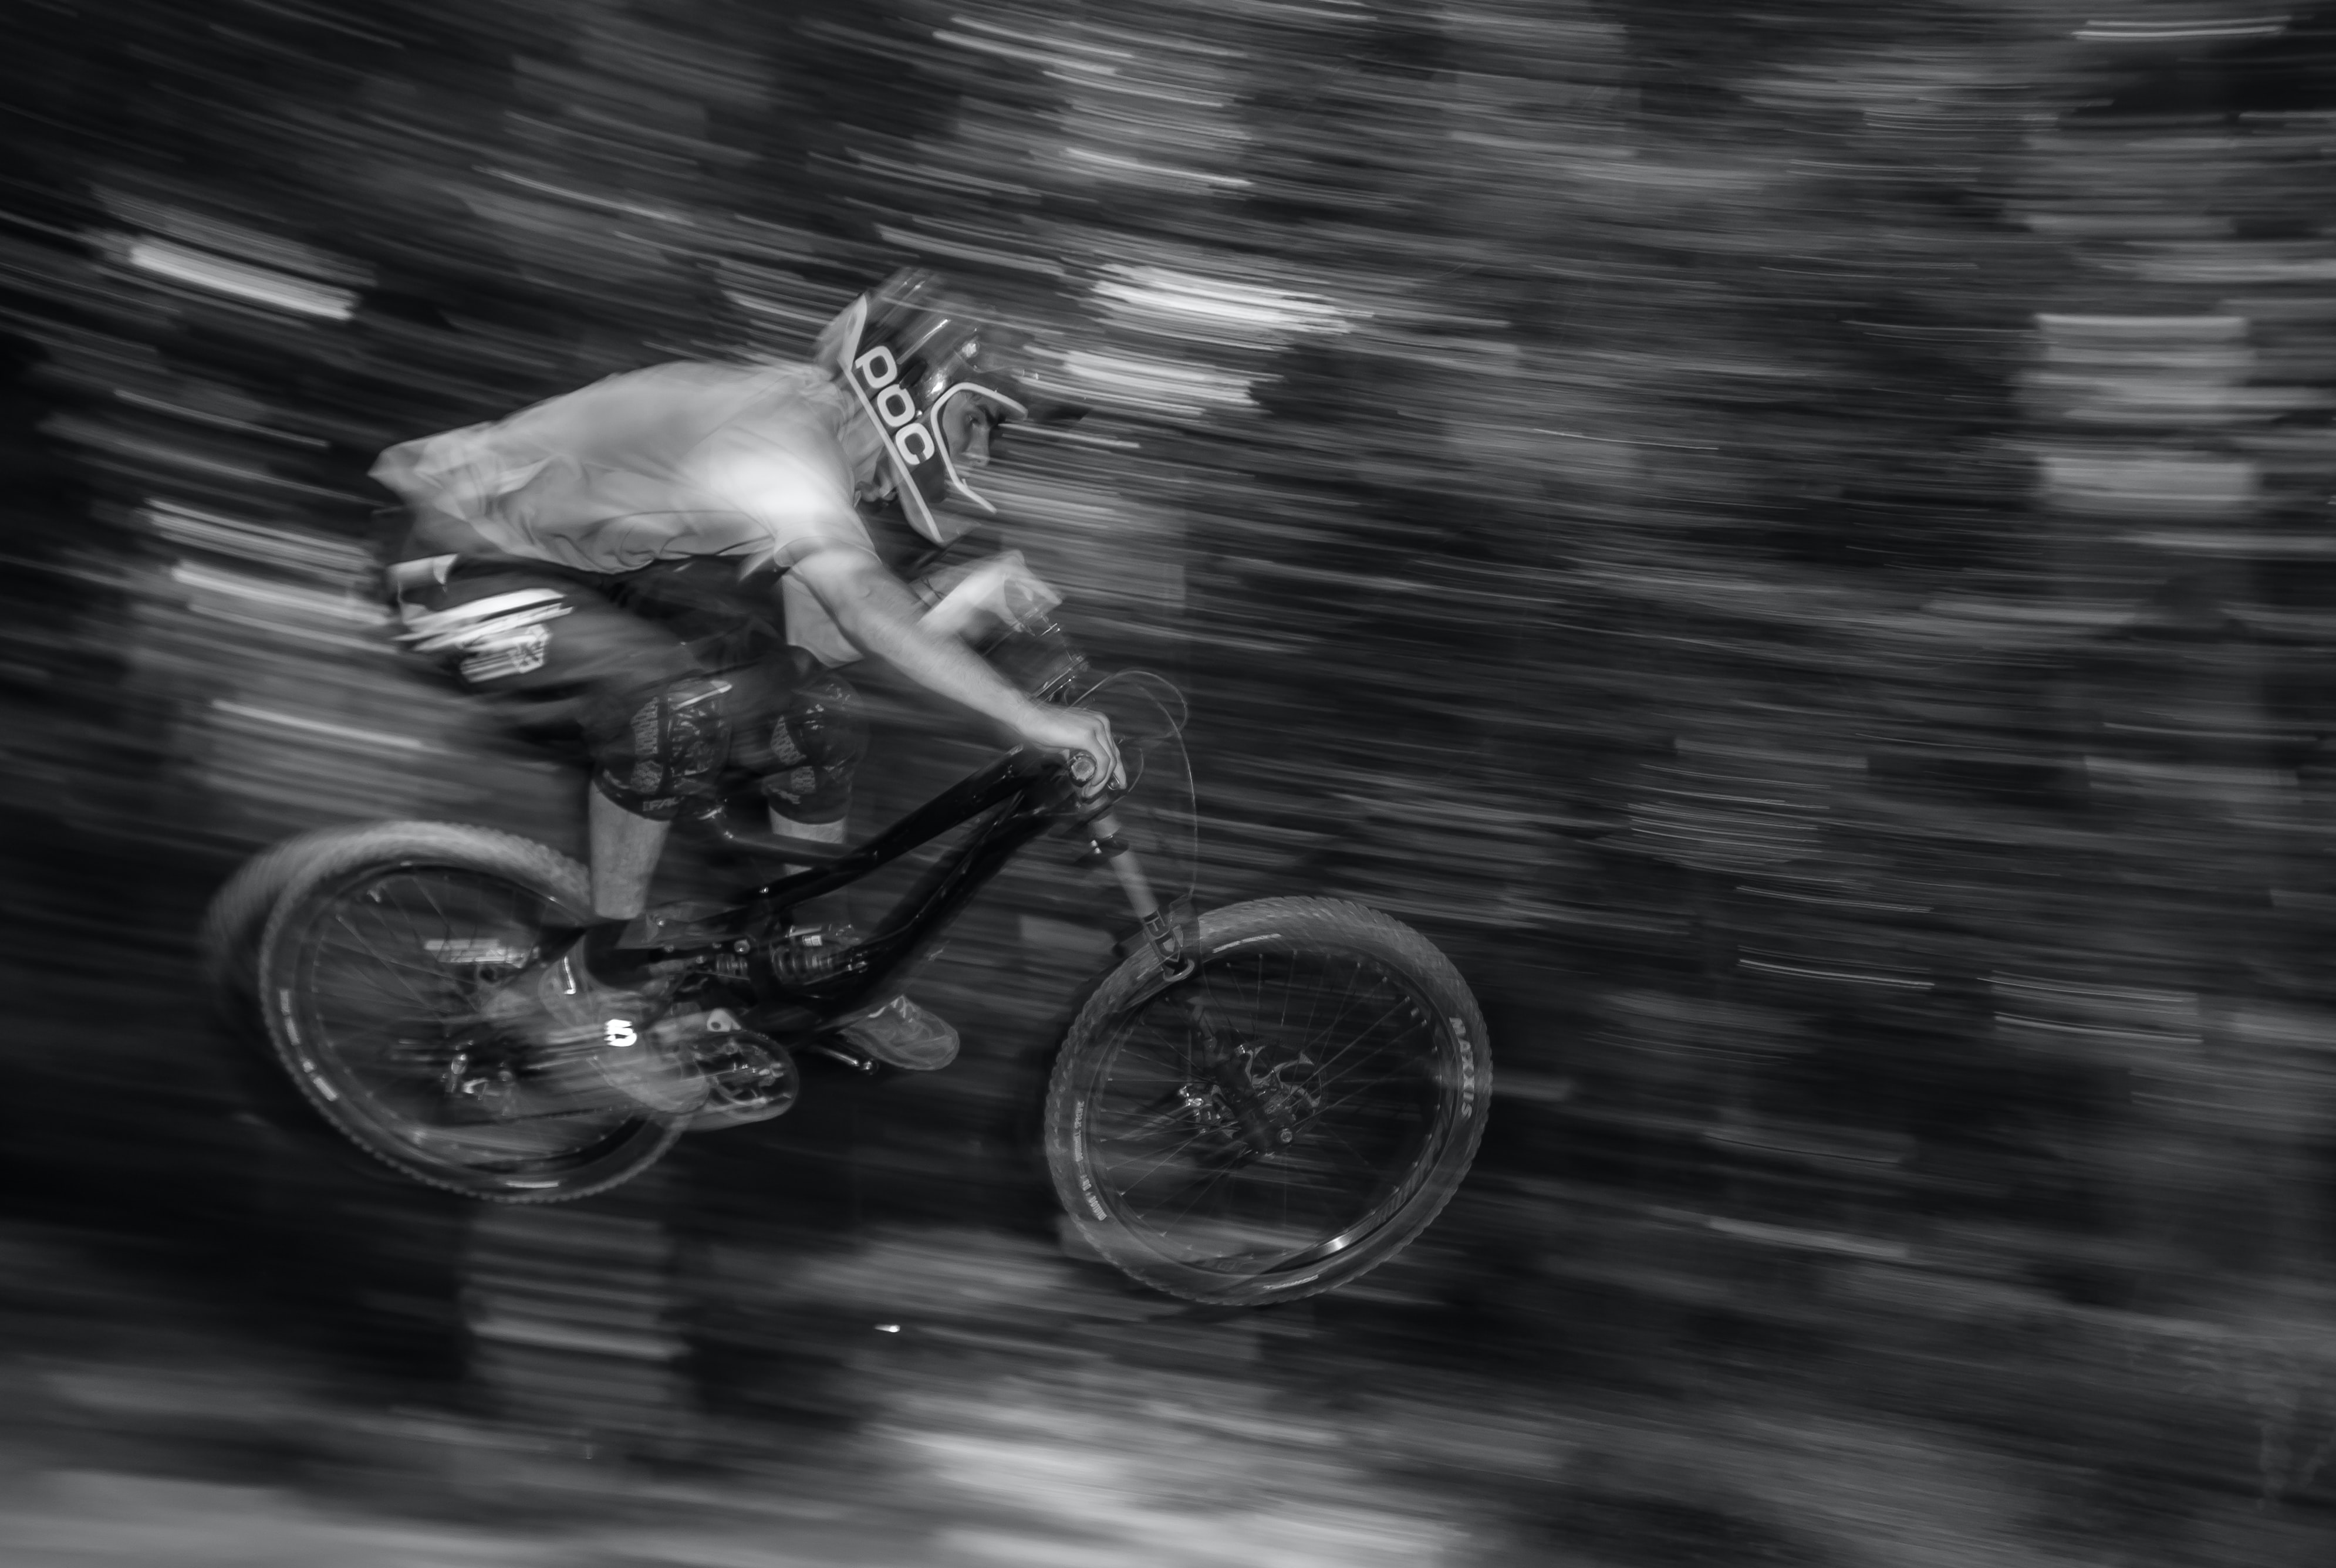 panning photography of man on bike doing stunts